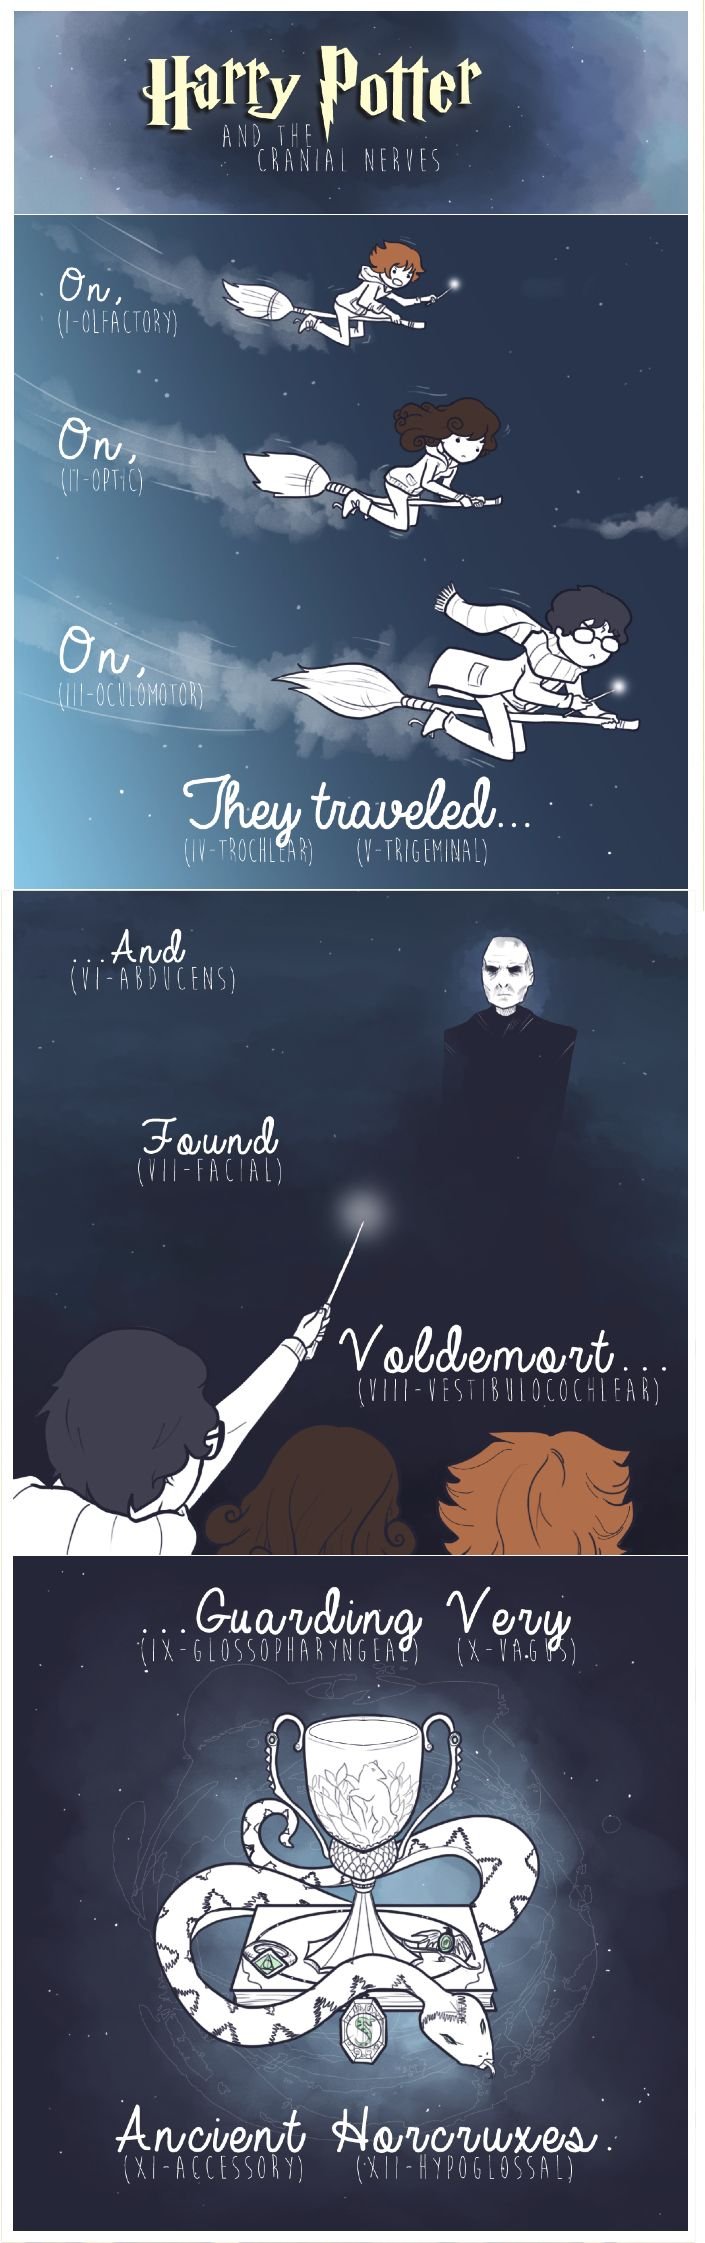 This is the illustrated Harry Potter-themed cranial nerve mnemonic I really could have used as an M1    Source: http://bioljerk.tumblr.com/post/70761780649/hello-there-no-im-not-dead-sorry-for-not